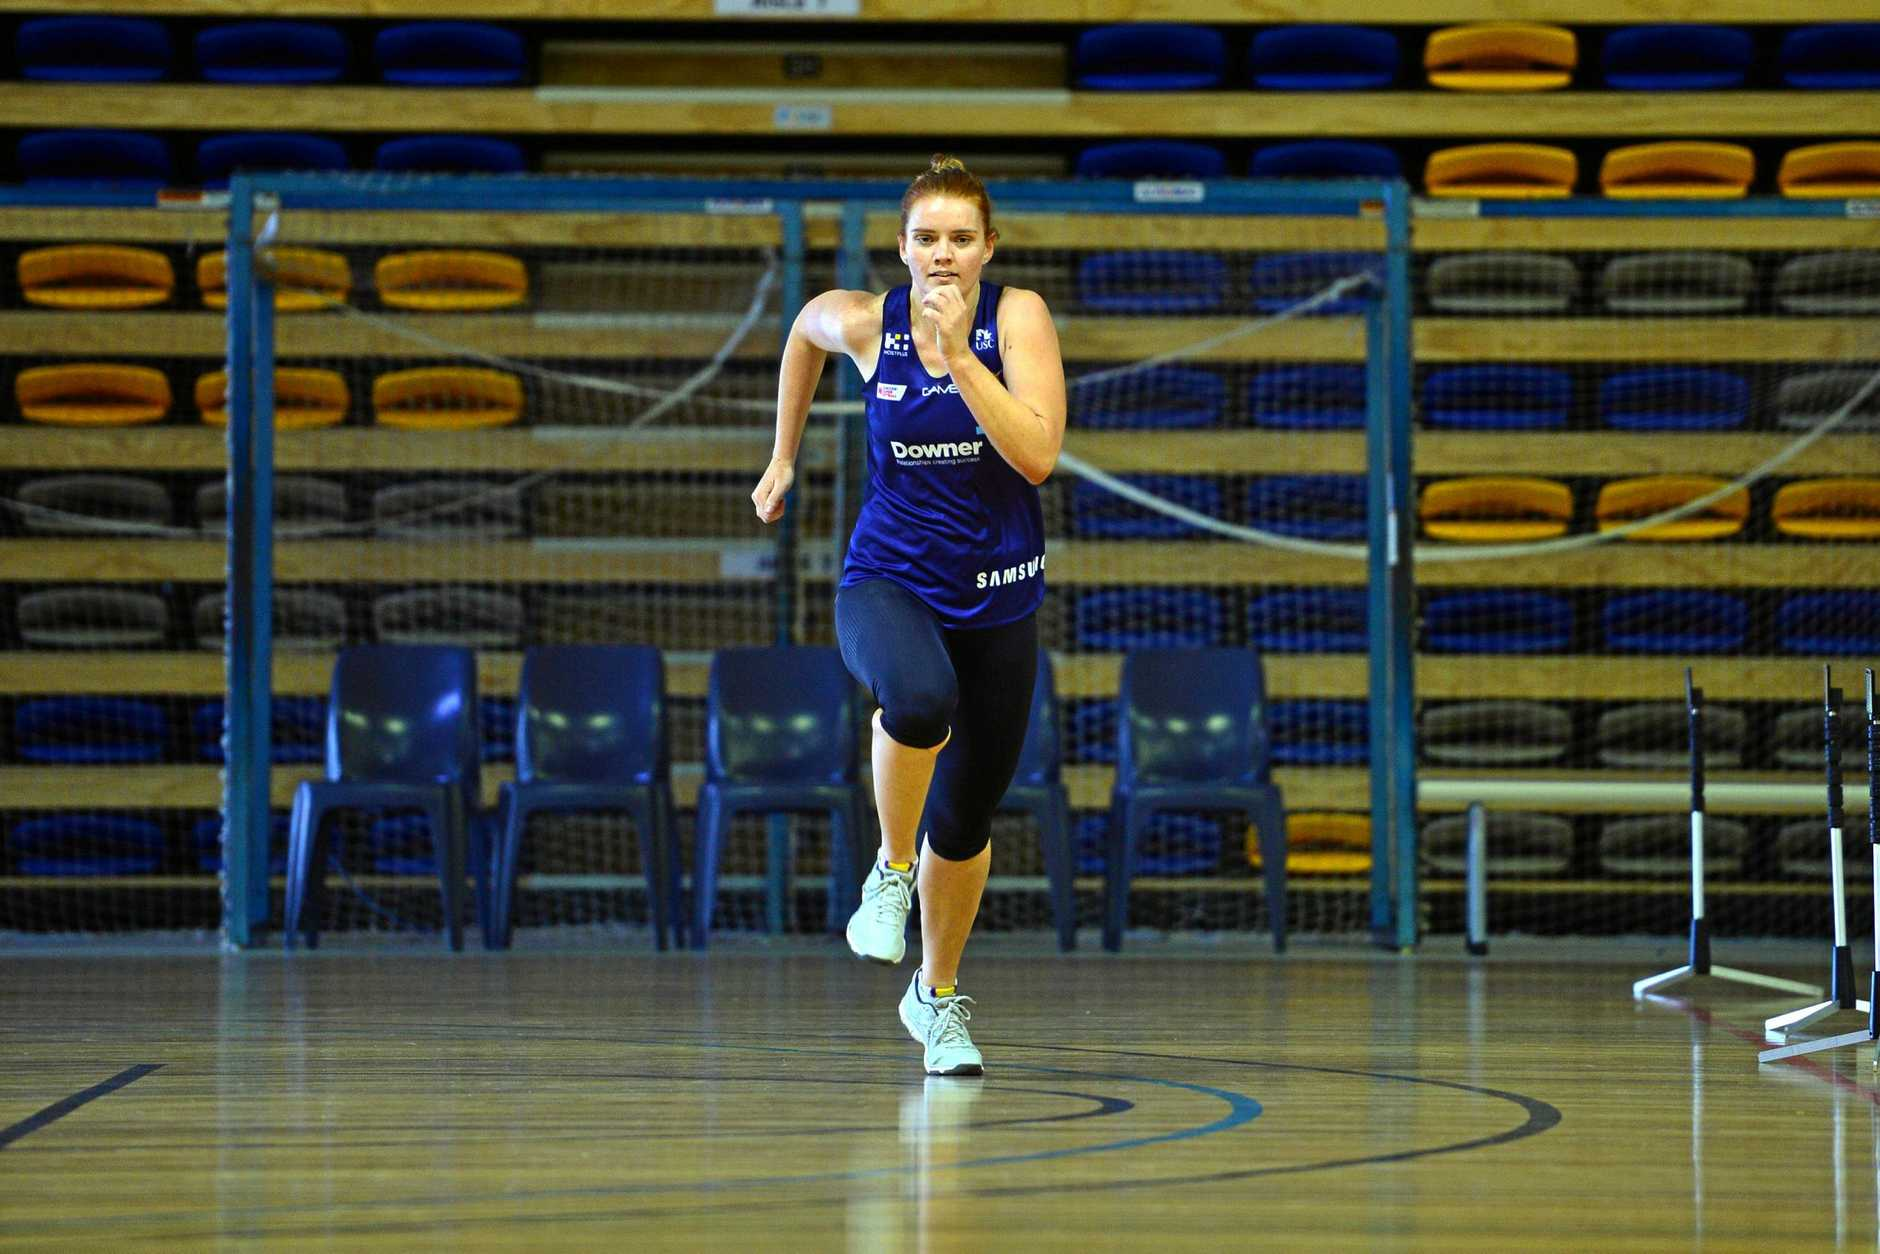 Sunshine Coast Lightning player Stephanie Wood runs through timing gates at Sunshine Coast University under the eye of Mark McKean.